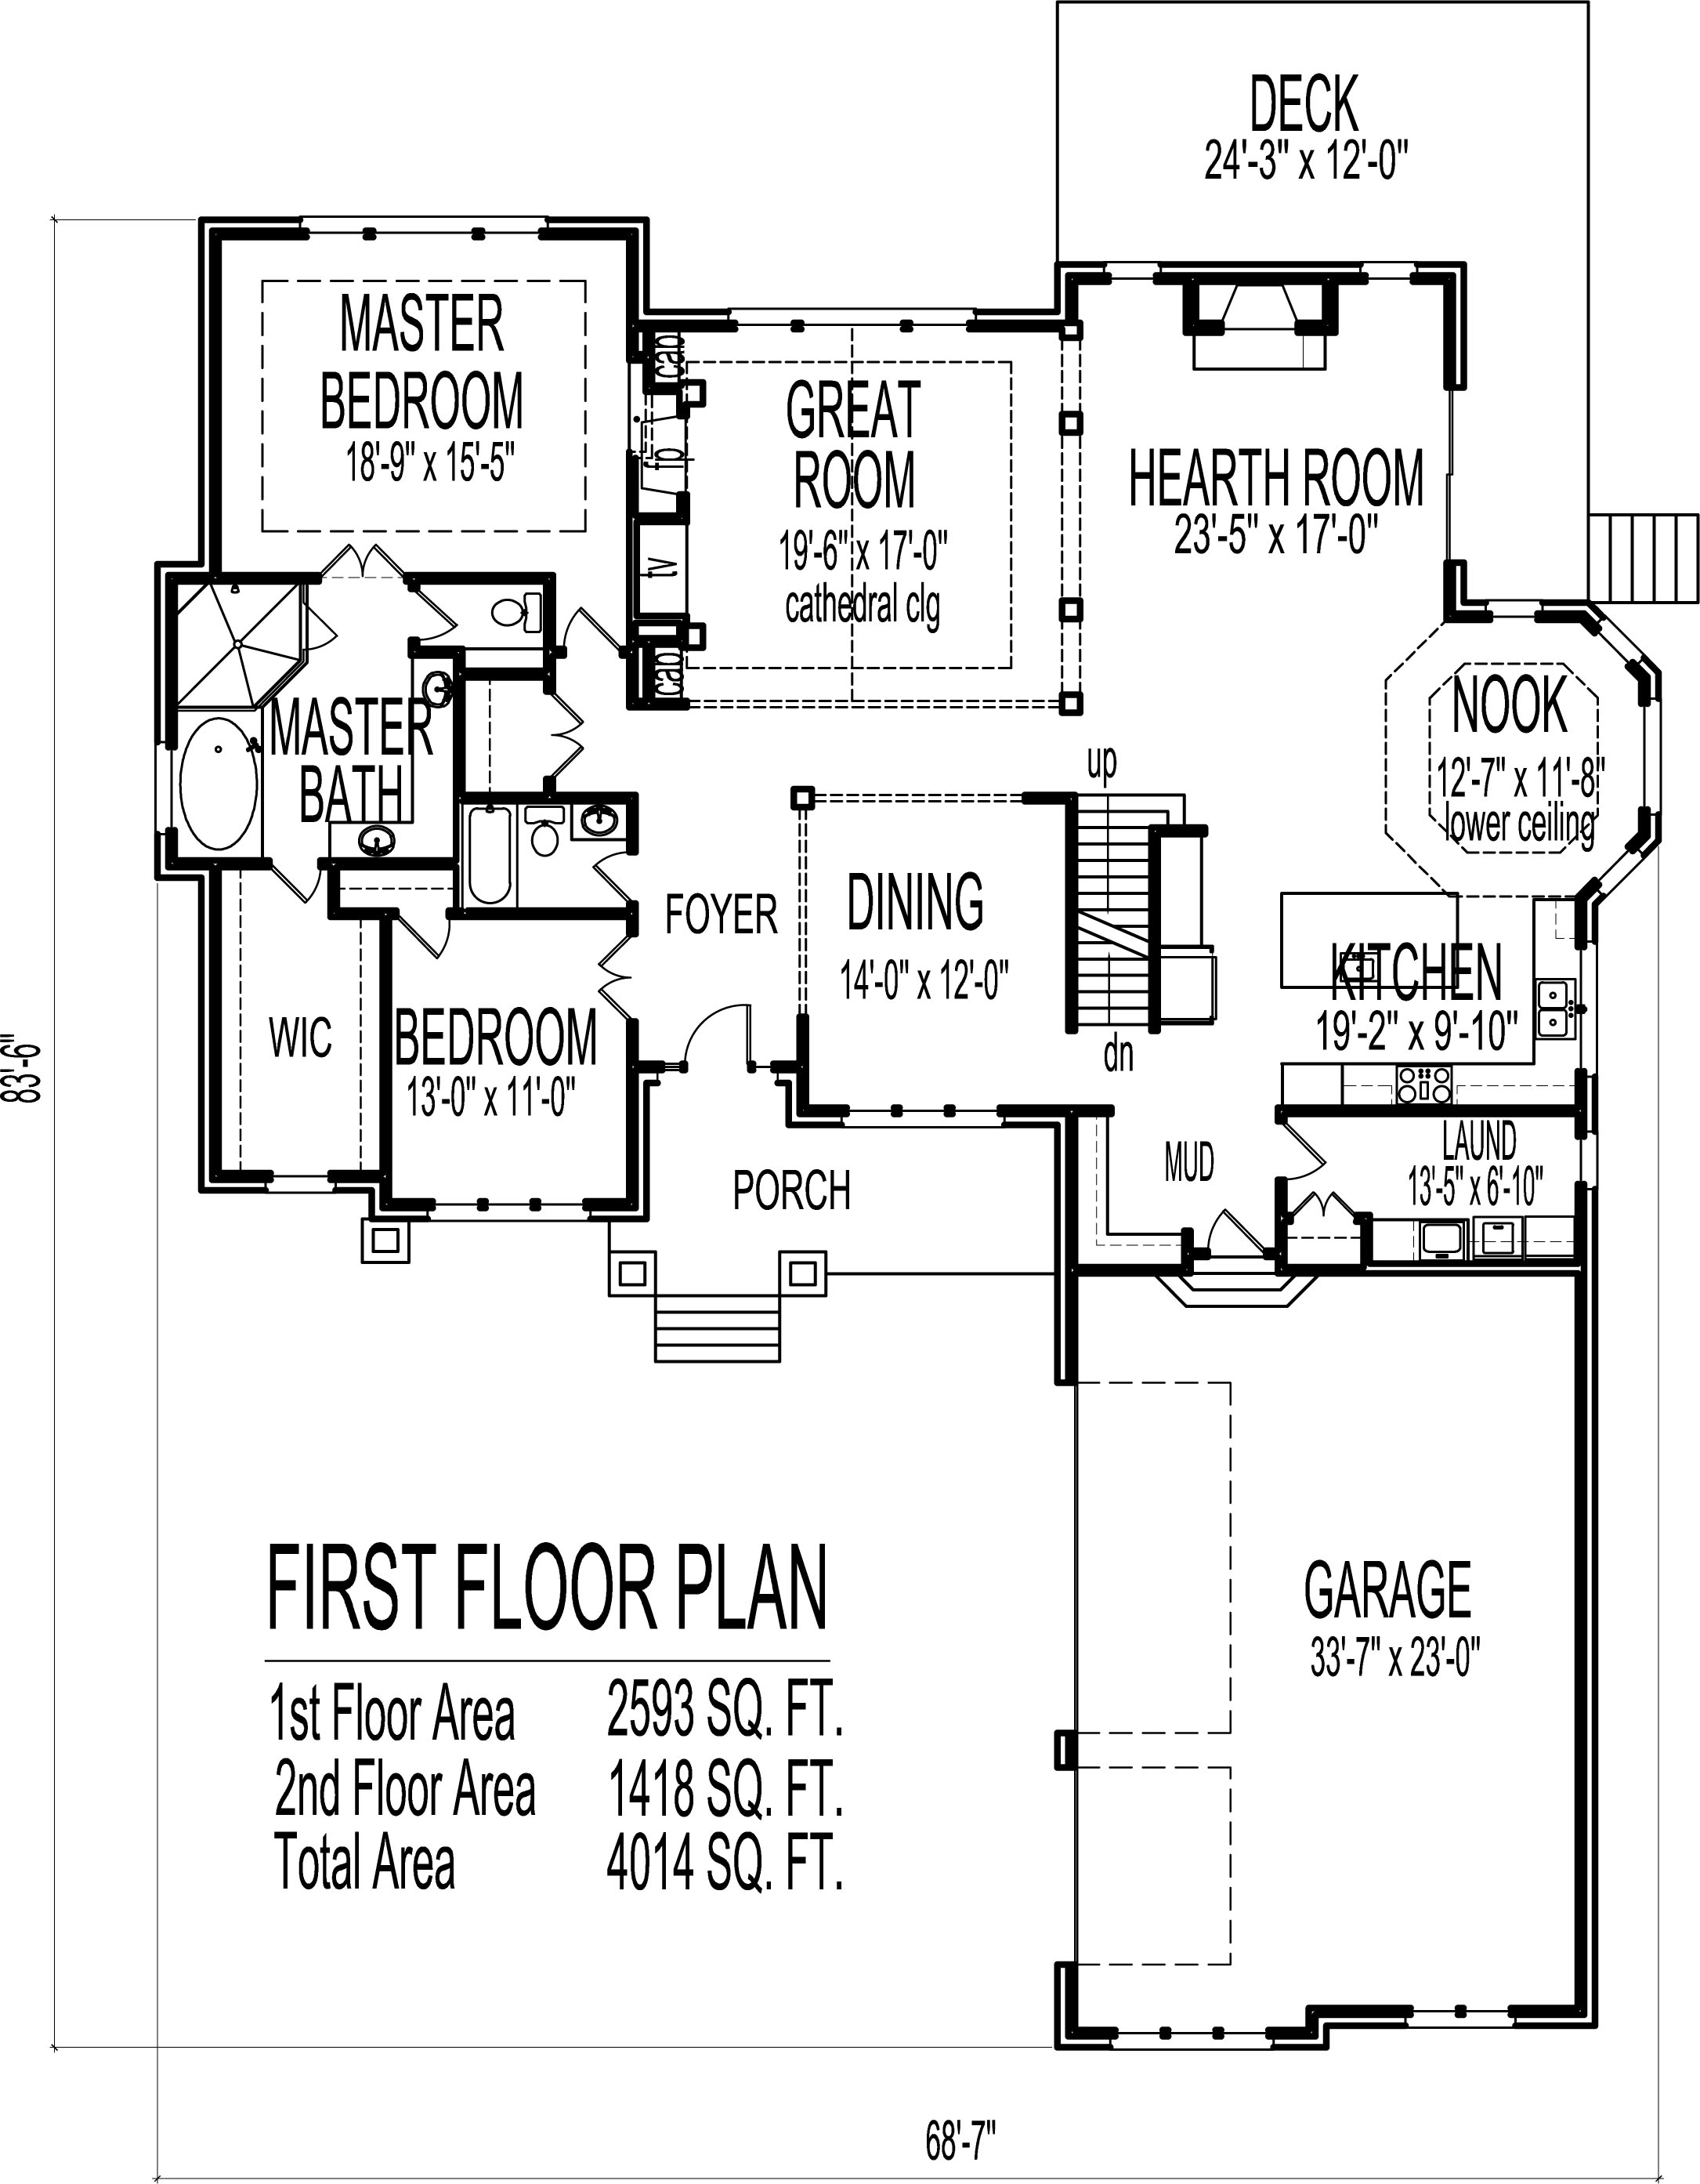 2 Story House Floor Plans 6 Bedroom Craftsman Home Design